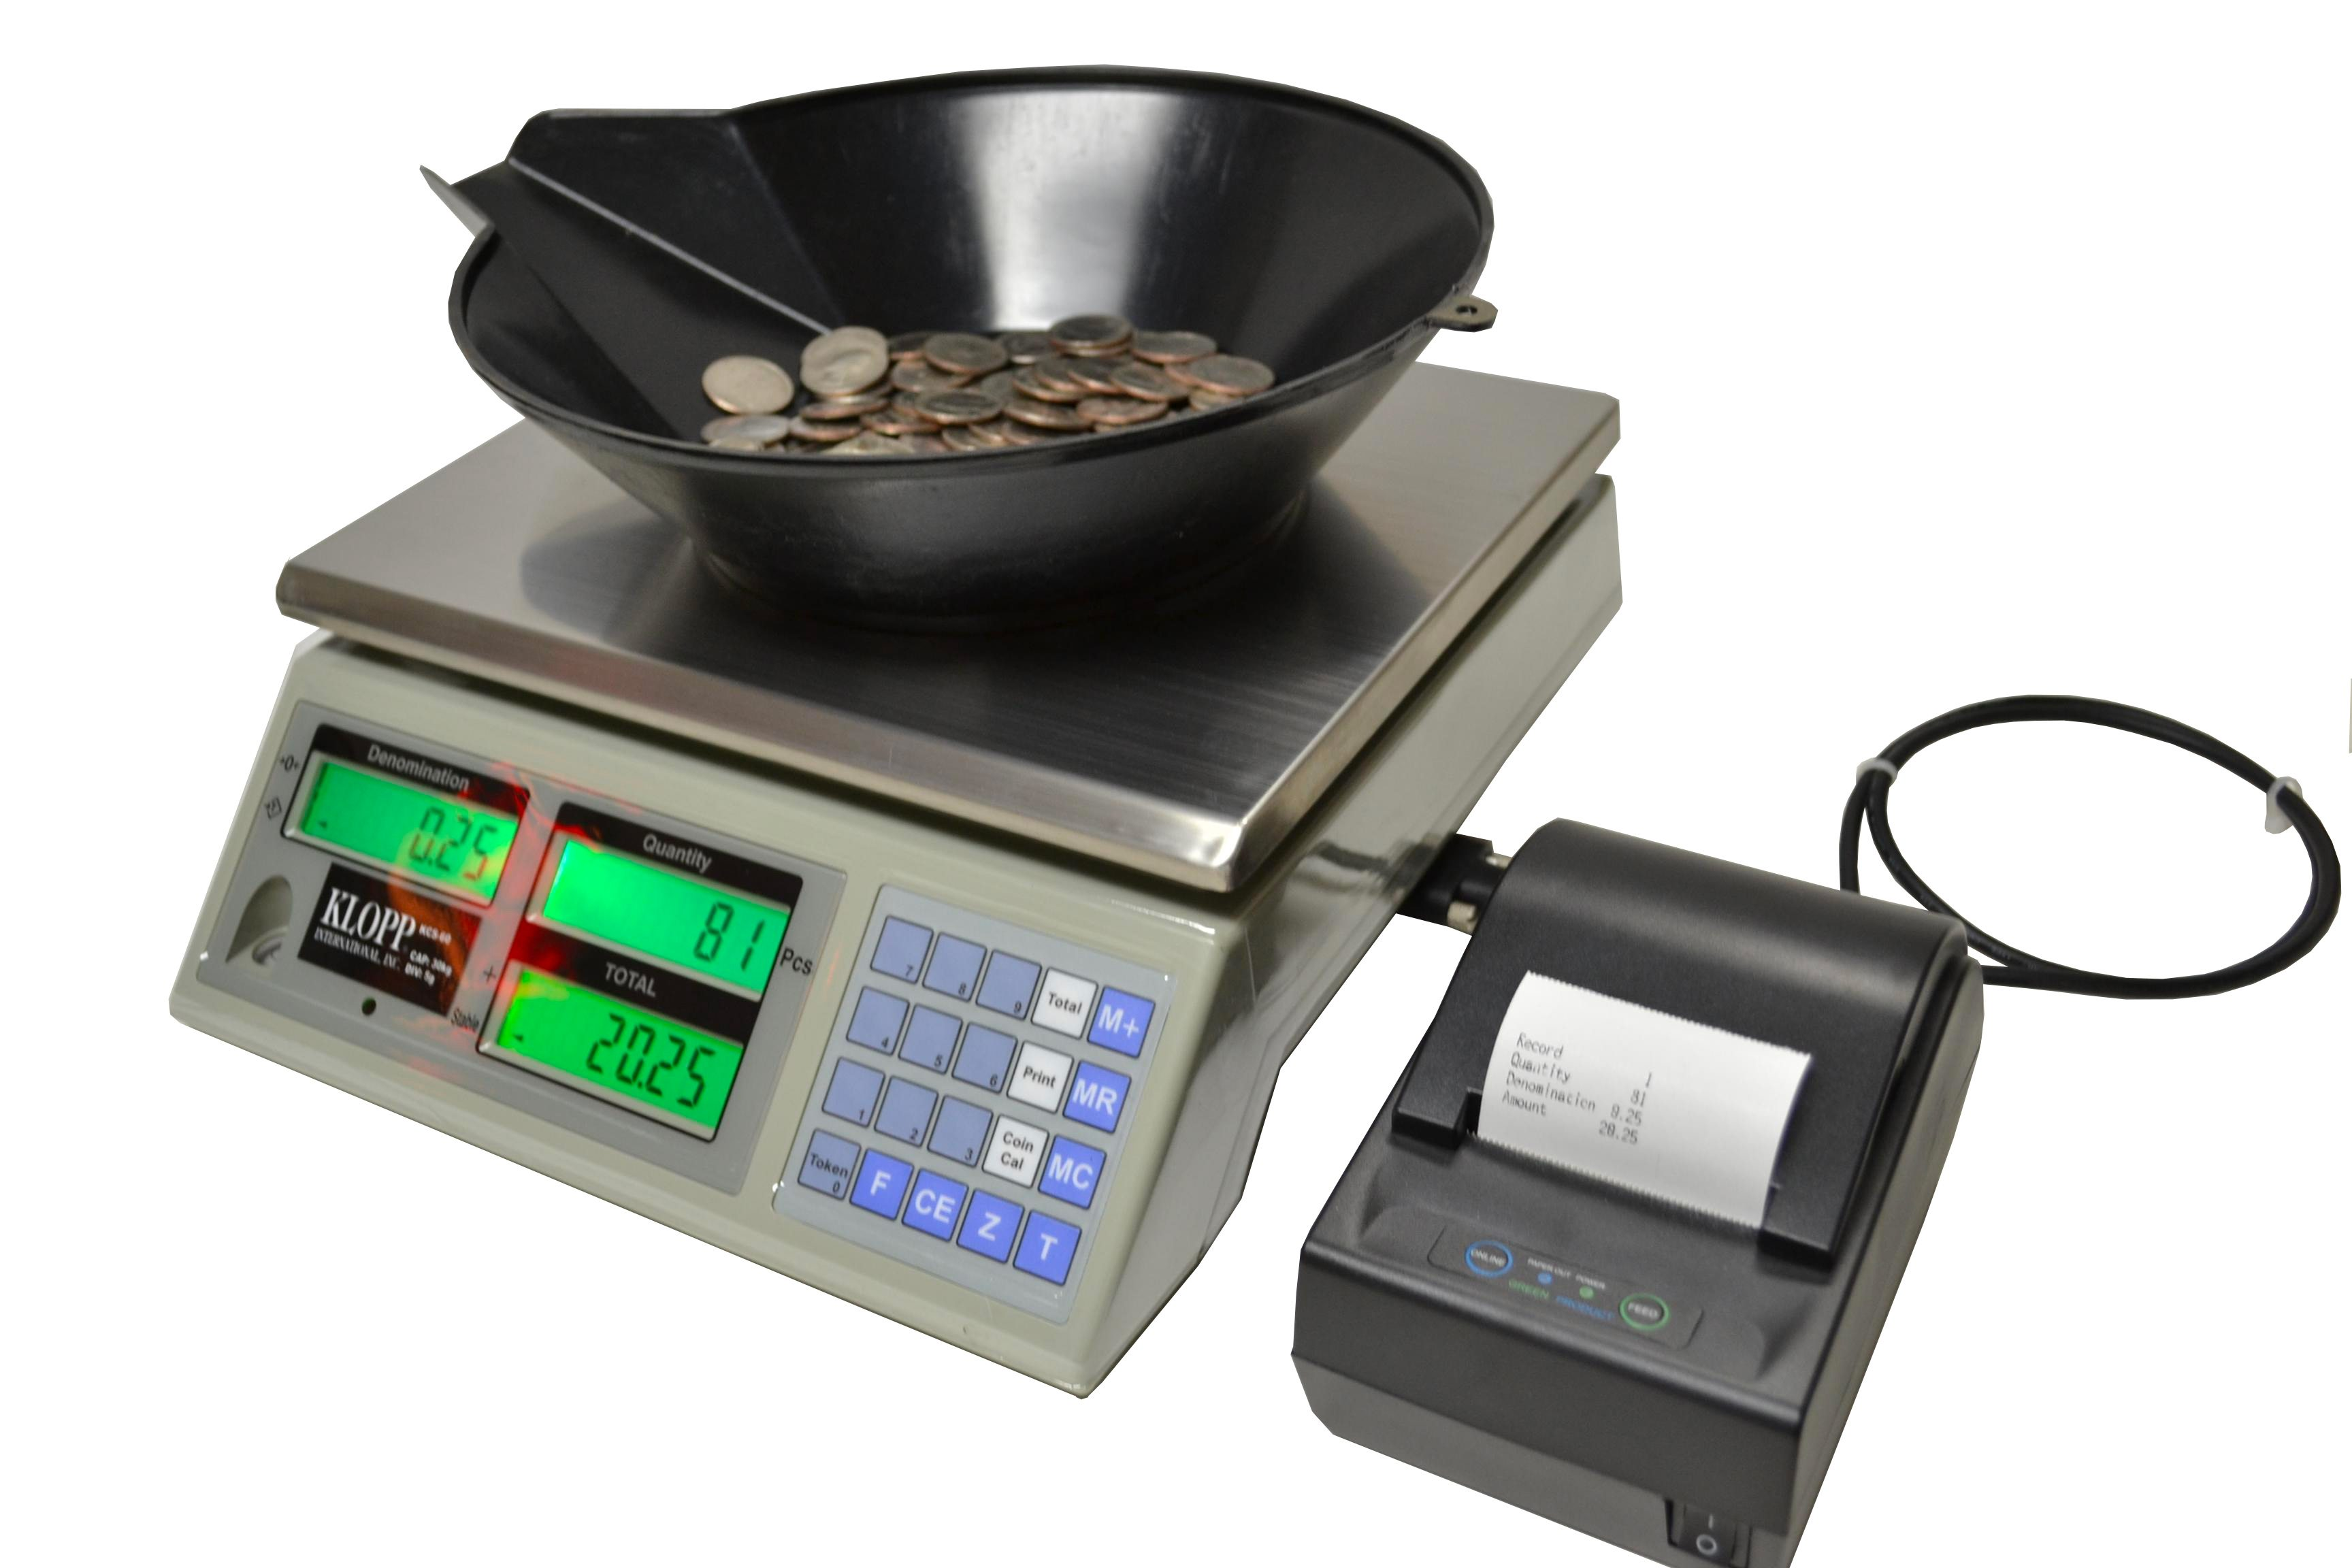 The KCS Series Coin Counting Scale in an easy-to-use, highly accurate scale for weighing coins, tokens and tickets